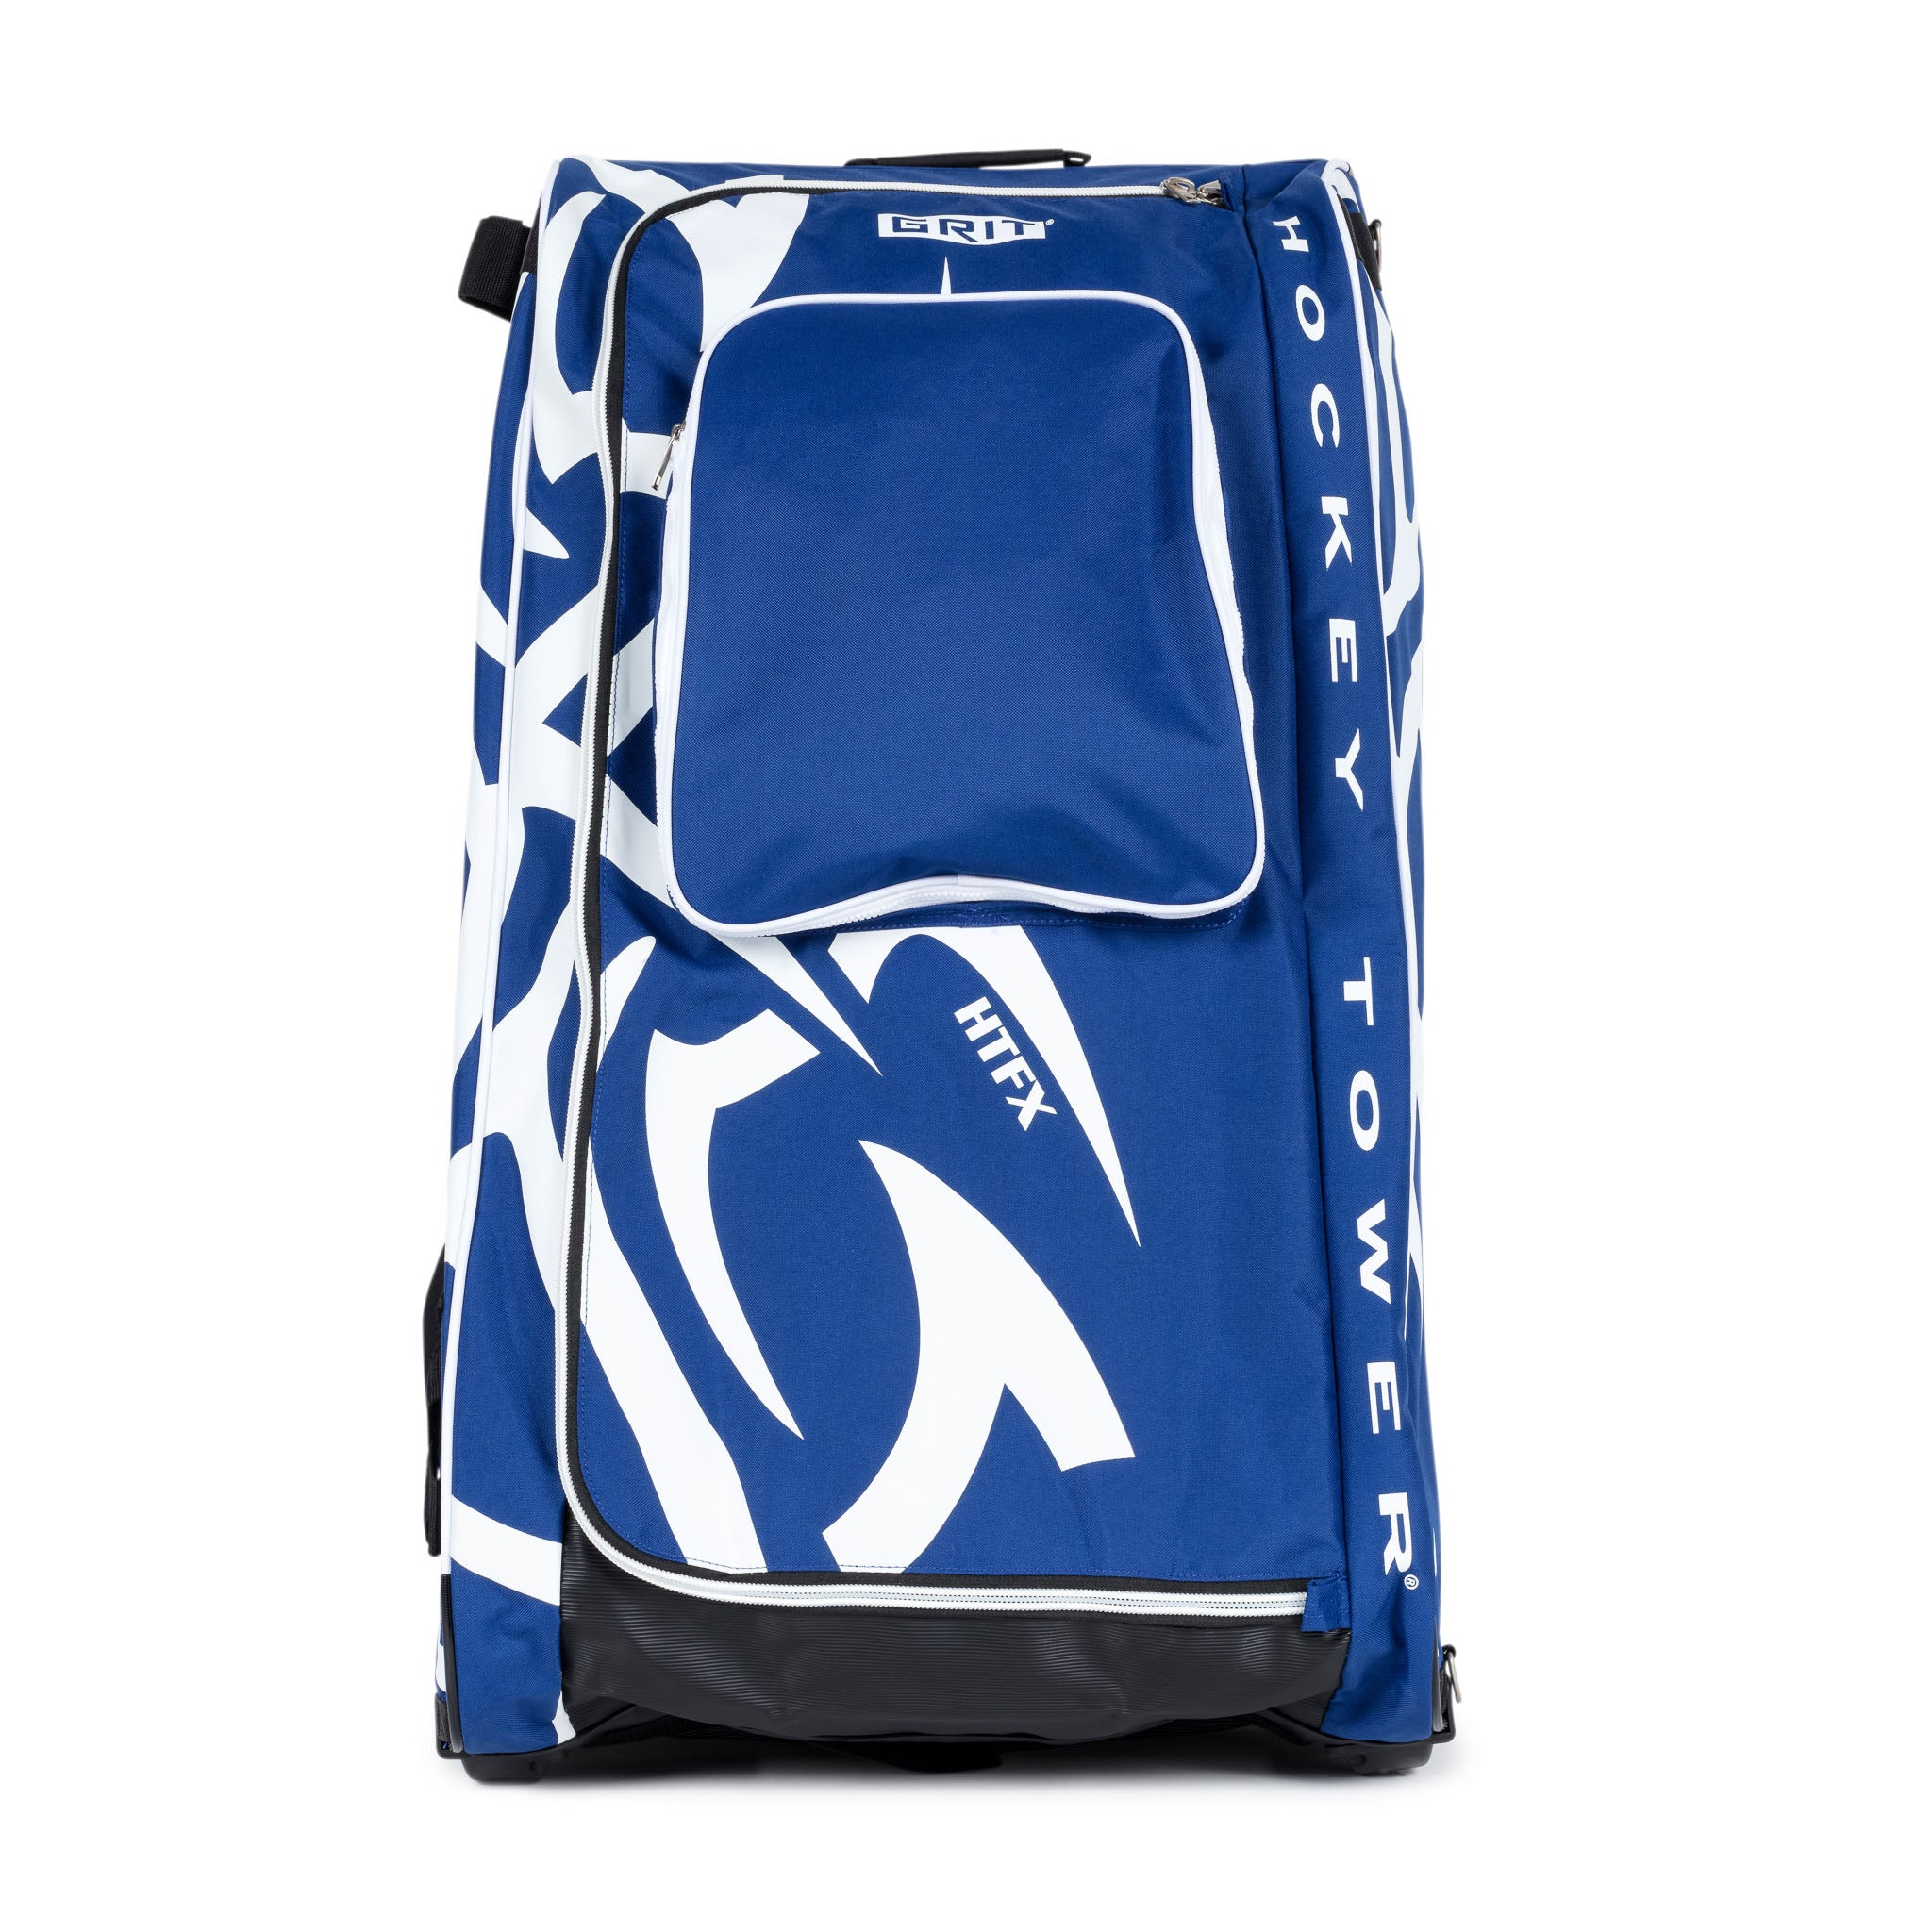 6a79374f486 Grit HTFX Hockey Tower Senior Bag – The Hockey Shop Source For Sports